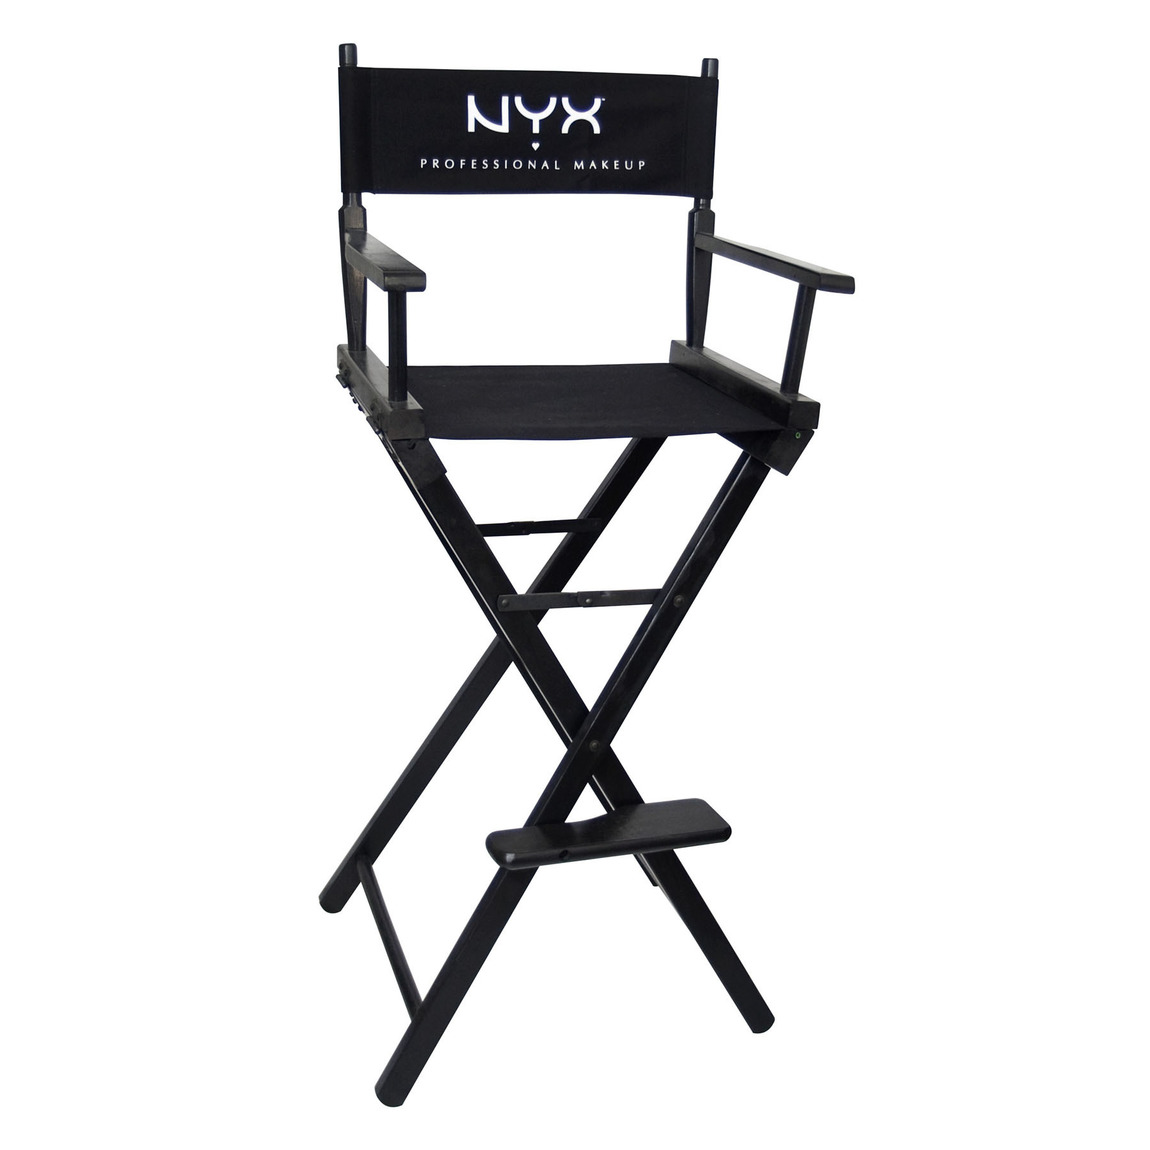 Make Up Studio Chairs Nyx Makeup Vanity Beste Awesome Inspiration